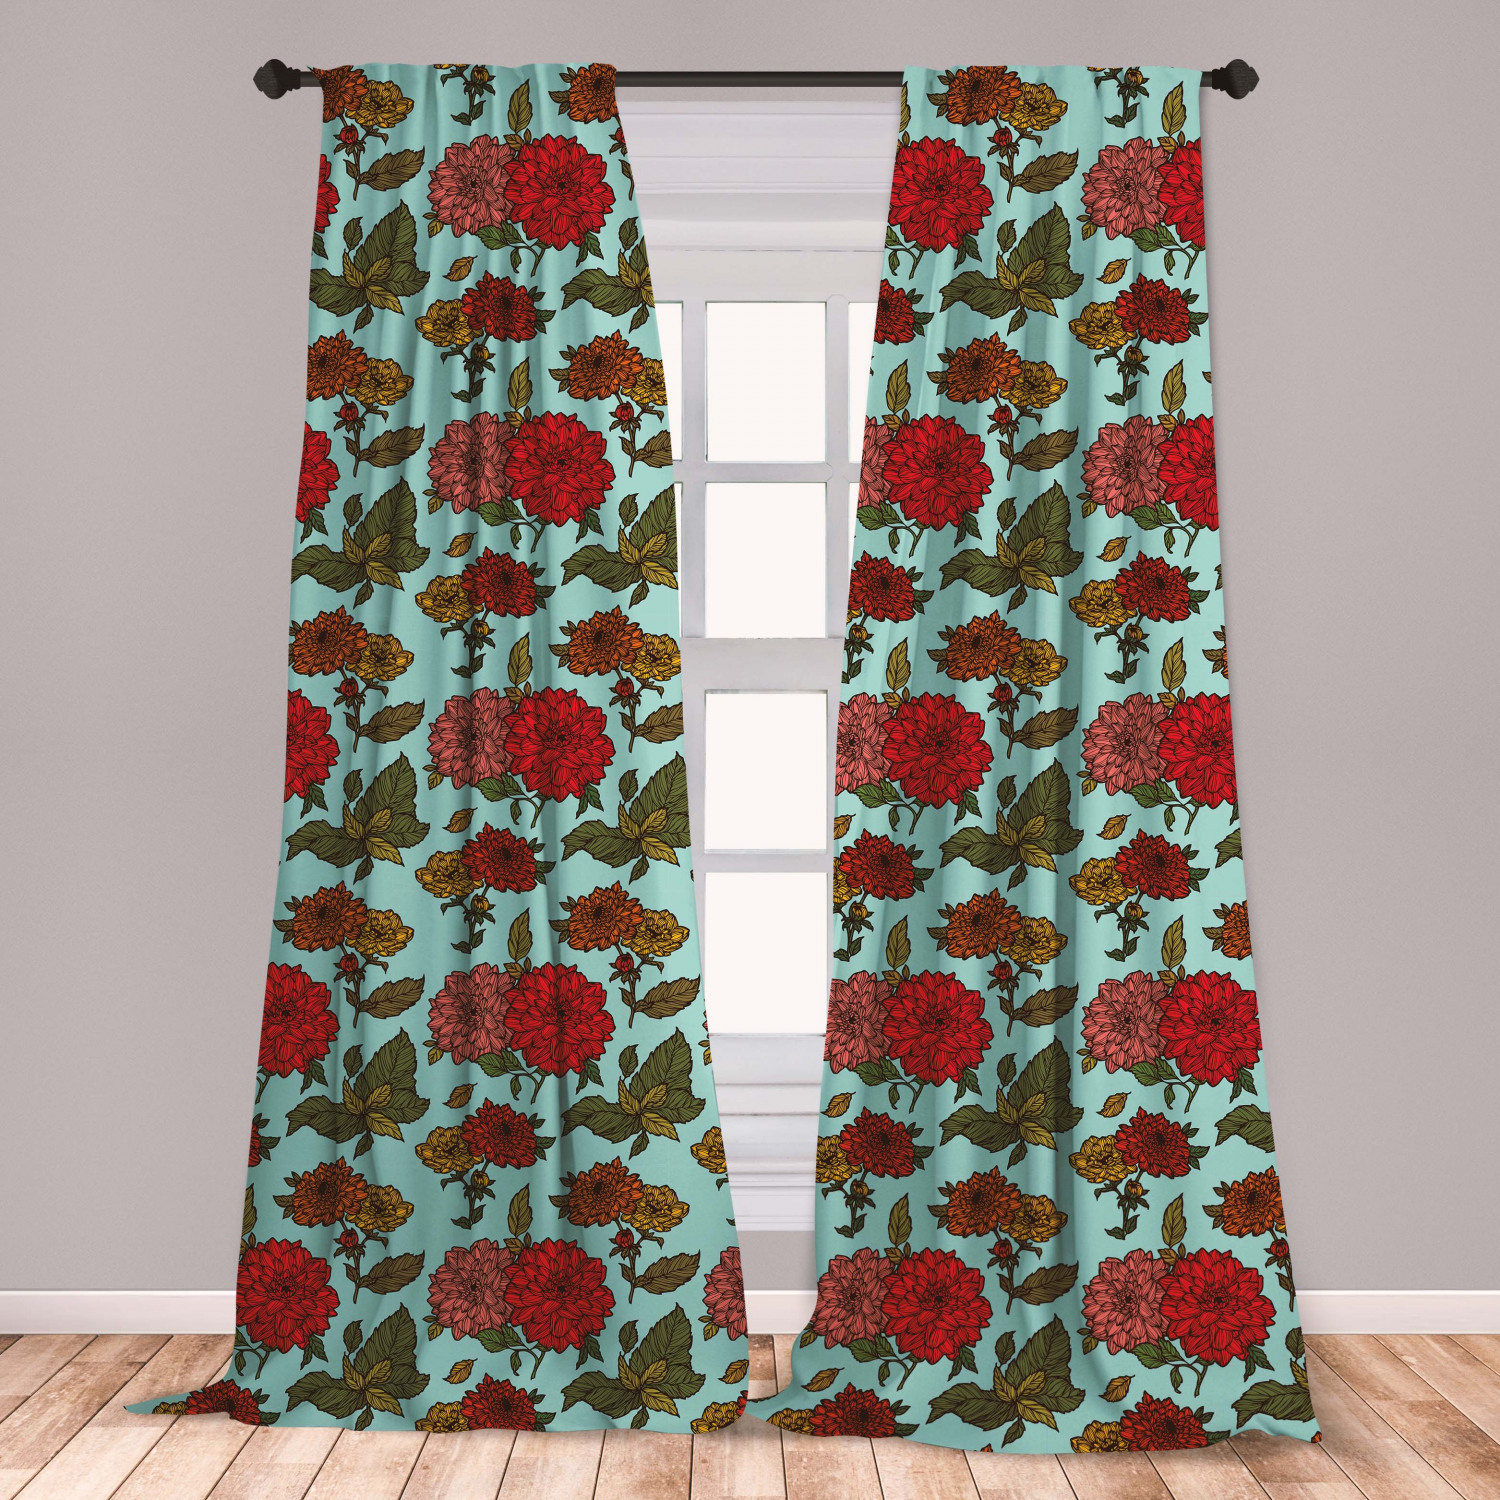 Curtains Drapes Flower Print Microfiber Curtains 2 Panel Set Living Room Bedroom In 3 Sizes Home Garden Mbln Org